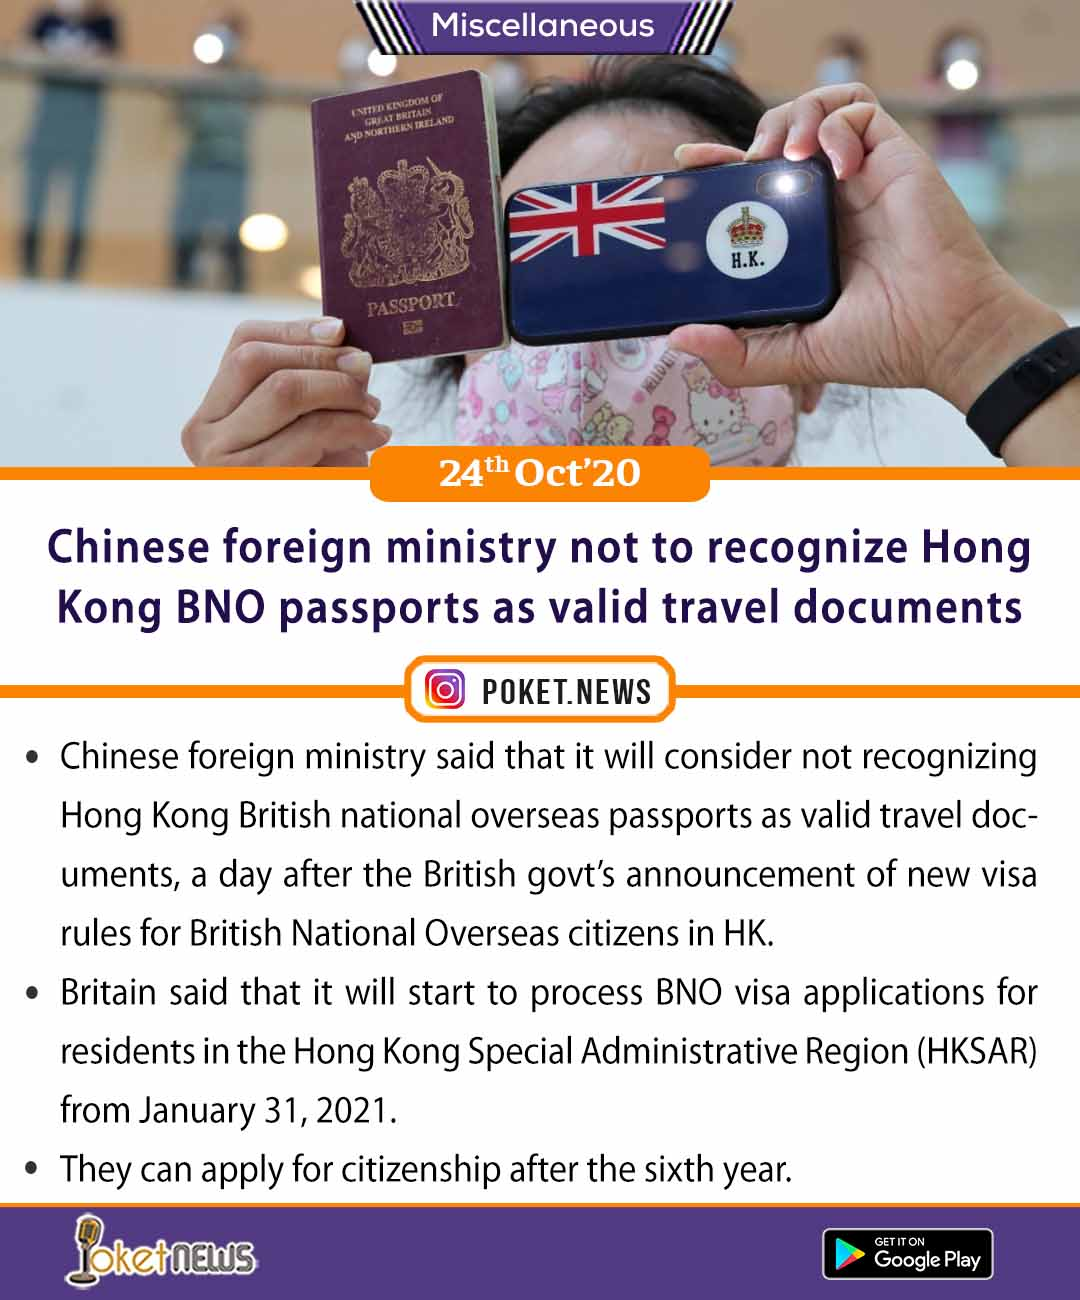 Chinese foreign ministry not to recognize Hong Kong BNO passports as valid travel documents